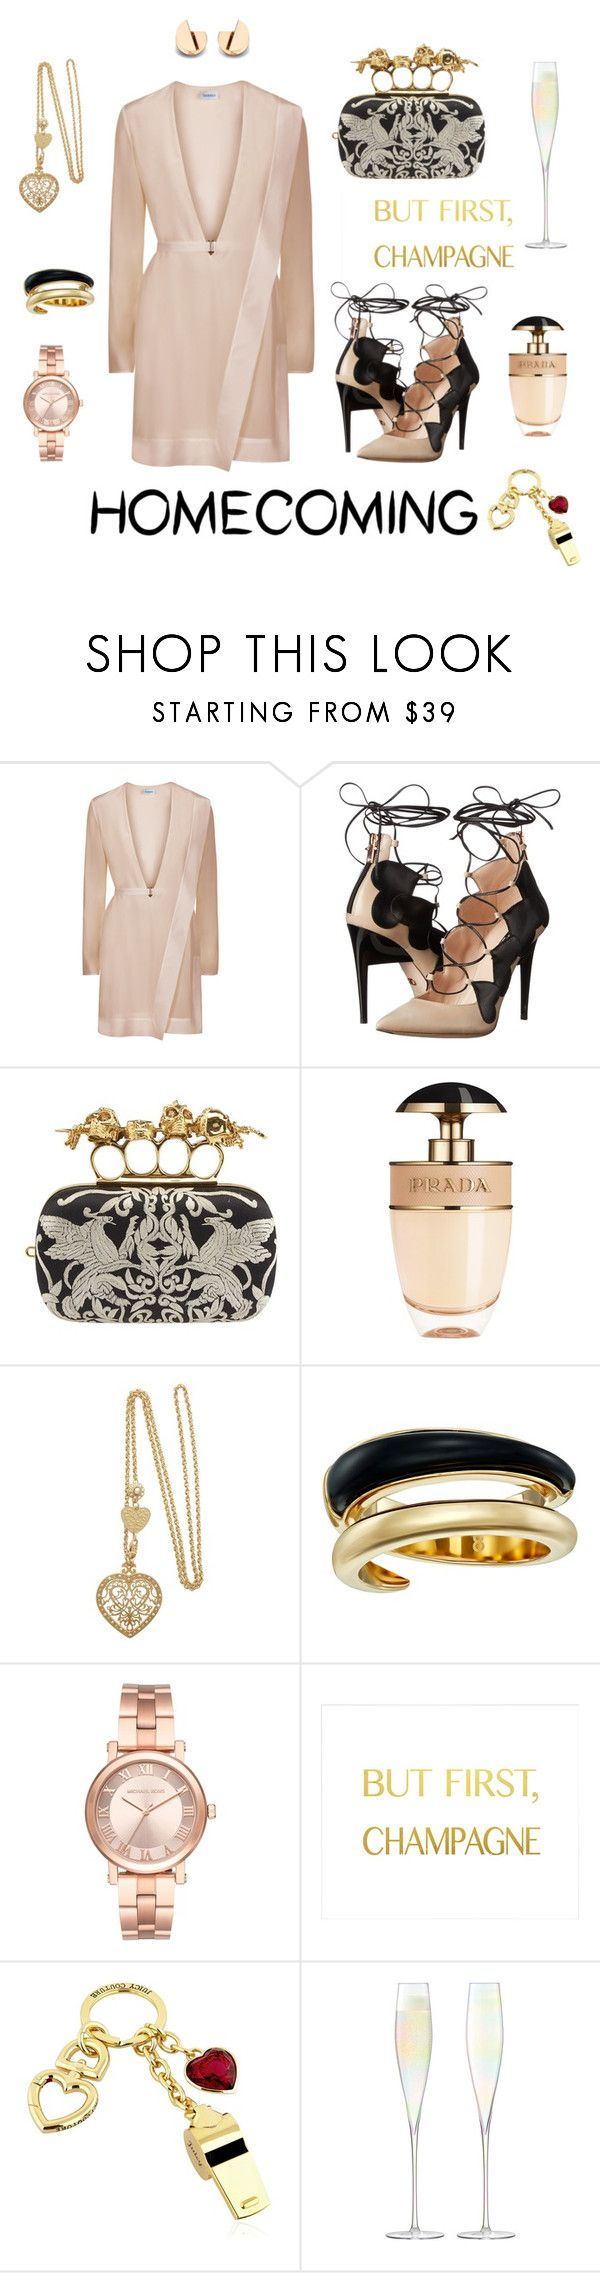 """Champagne Homecoming"" by hackneygirl ❤ liked on Polyvore featuring Ruthie Davis, Alexander McQueen, Prada, Michael Kors, Juicy Couture and LSA International"